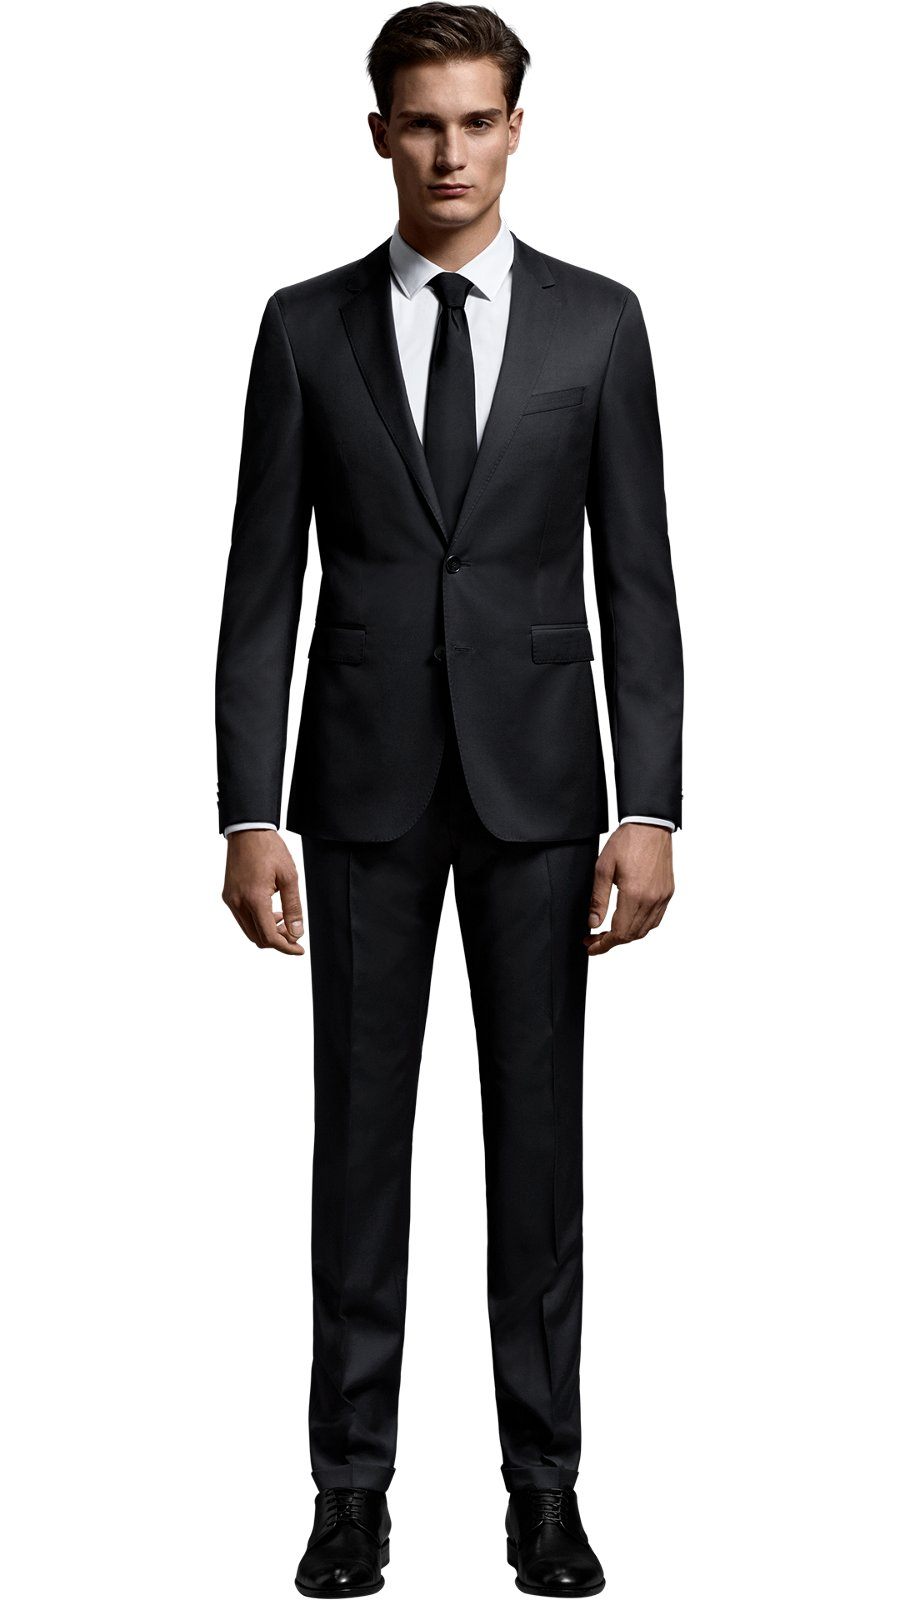 ffc2487d4f1 Man wearing a mix and match black suit from Create your look collection by  BOSS ...